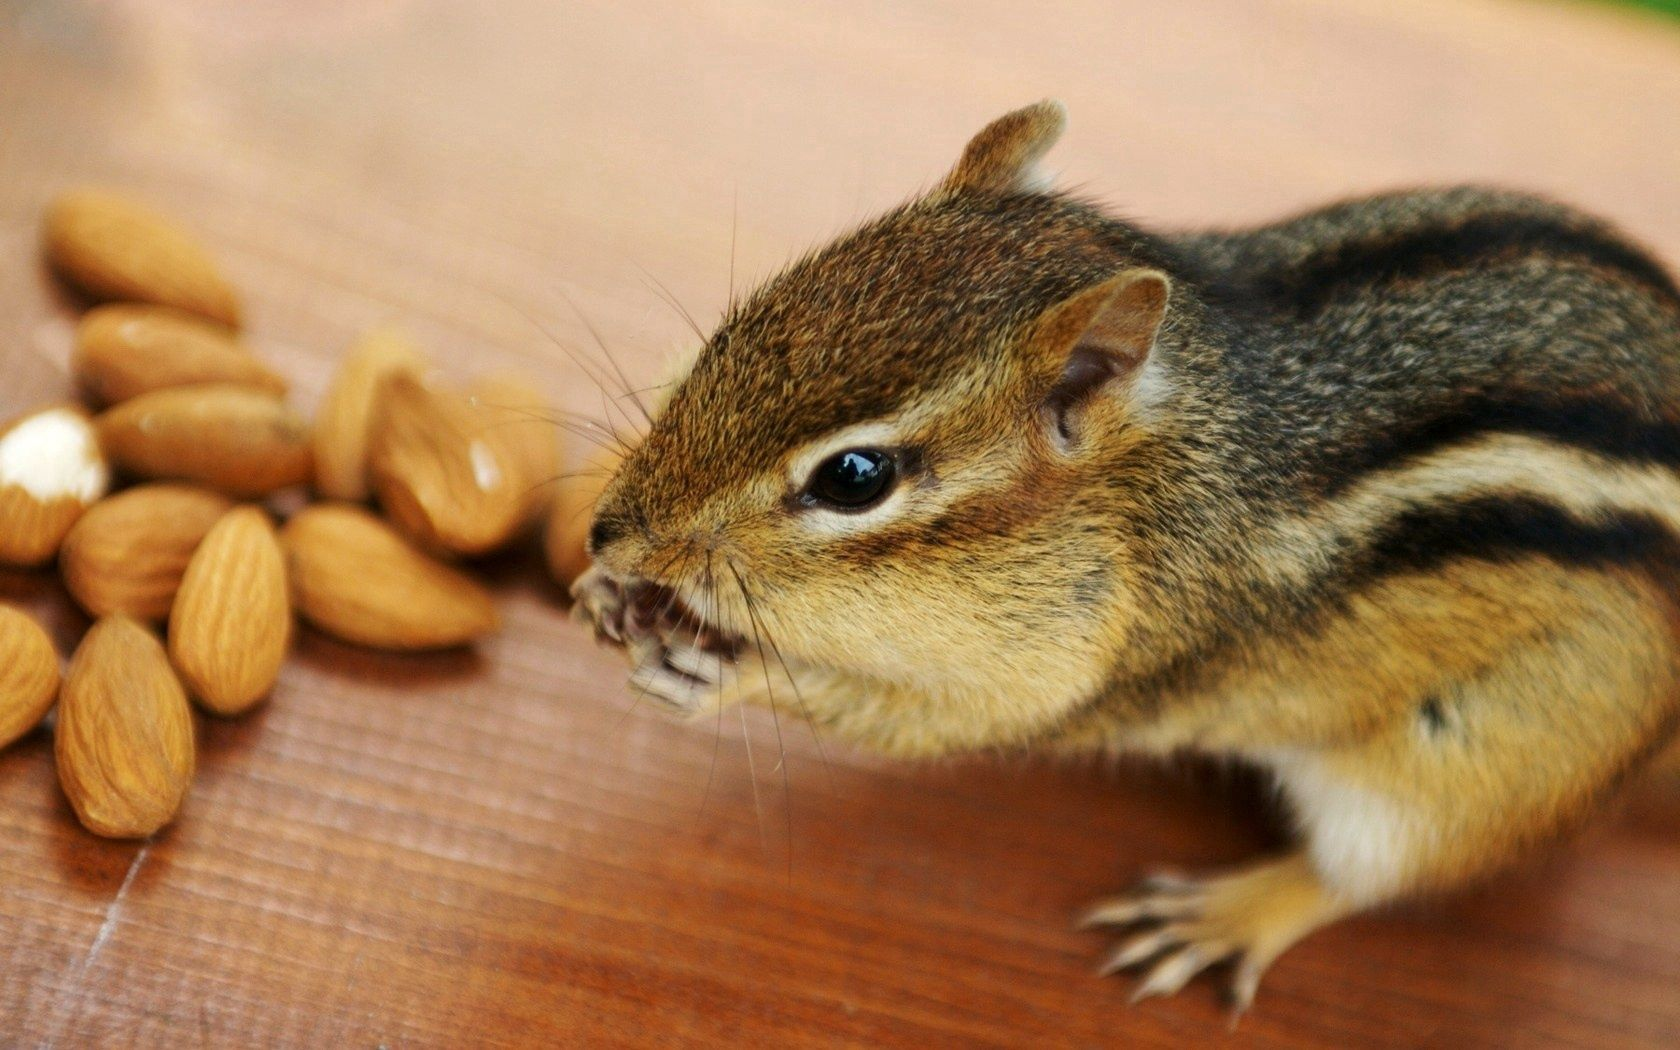 151913 download wallpaper Animals, Rodent, Nuts, Chipmunk, Animal screensavers and pictures for free